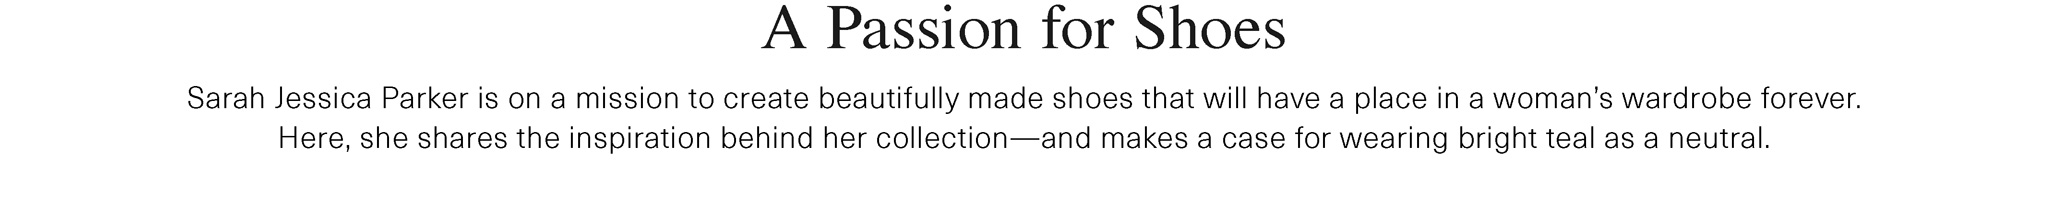 SJP Passion For Shoes